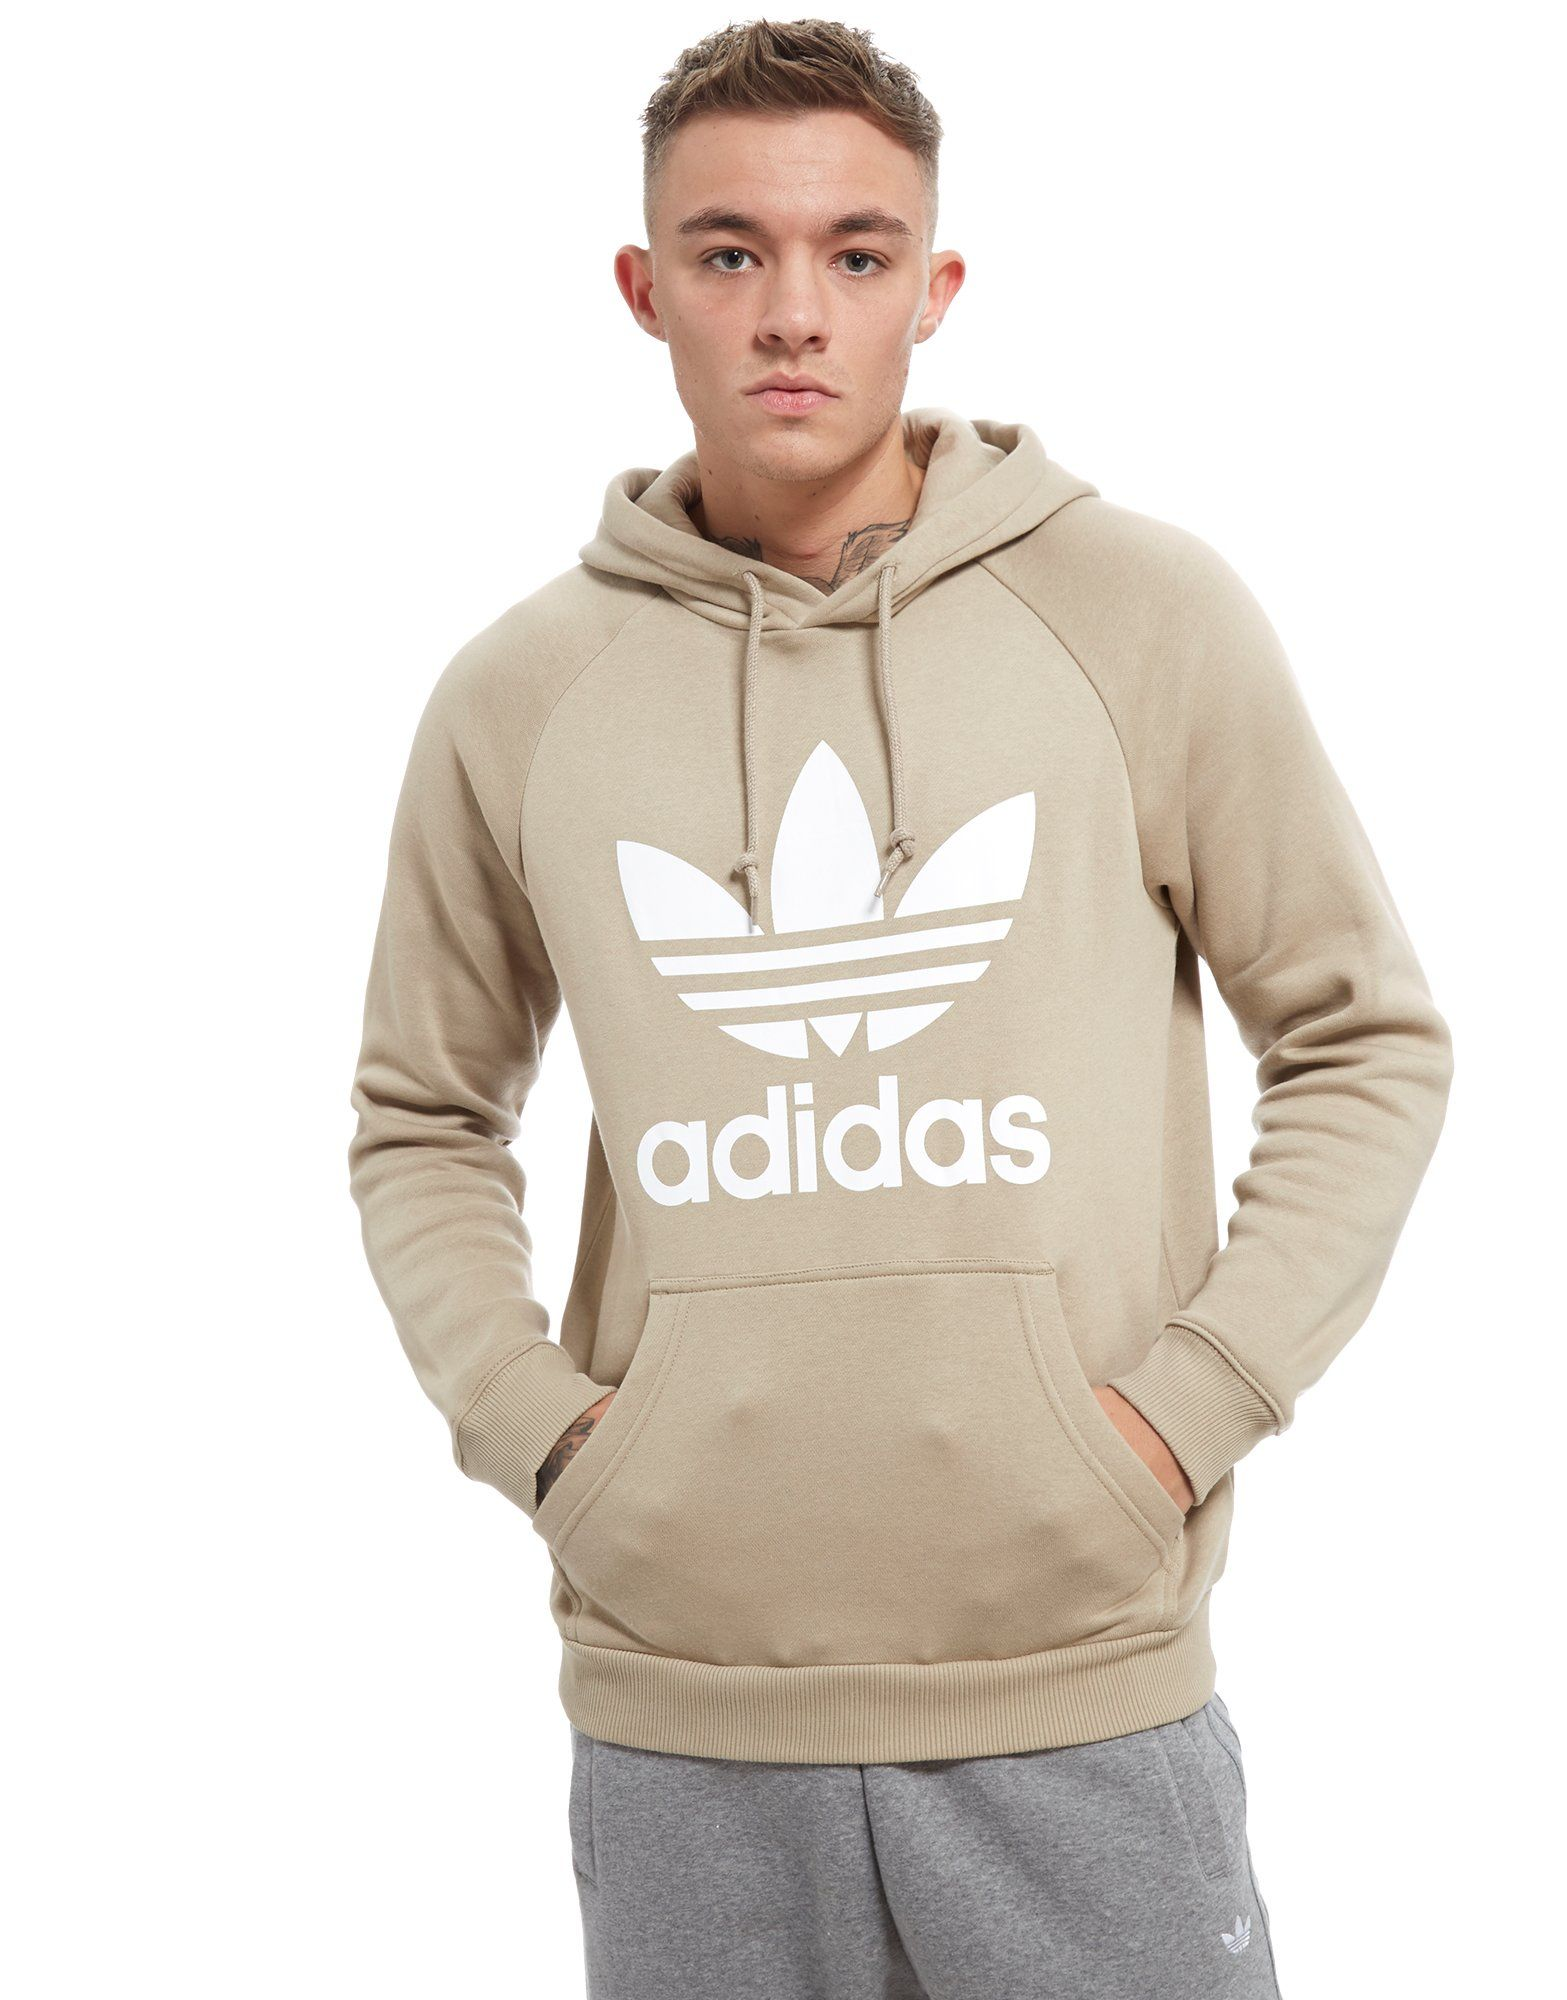 adidas originals trefoil hoodie jd sports. Black Bedroom Furniture Sets. Home Design Ideas